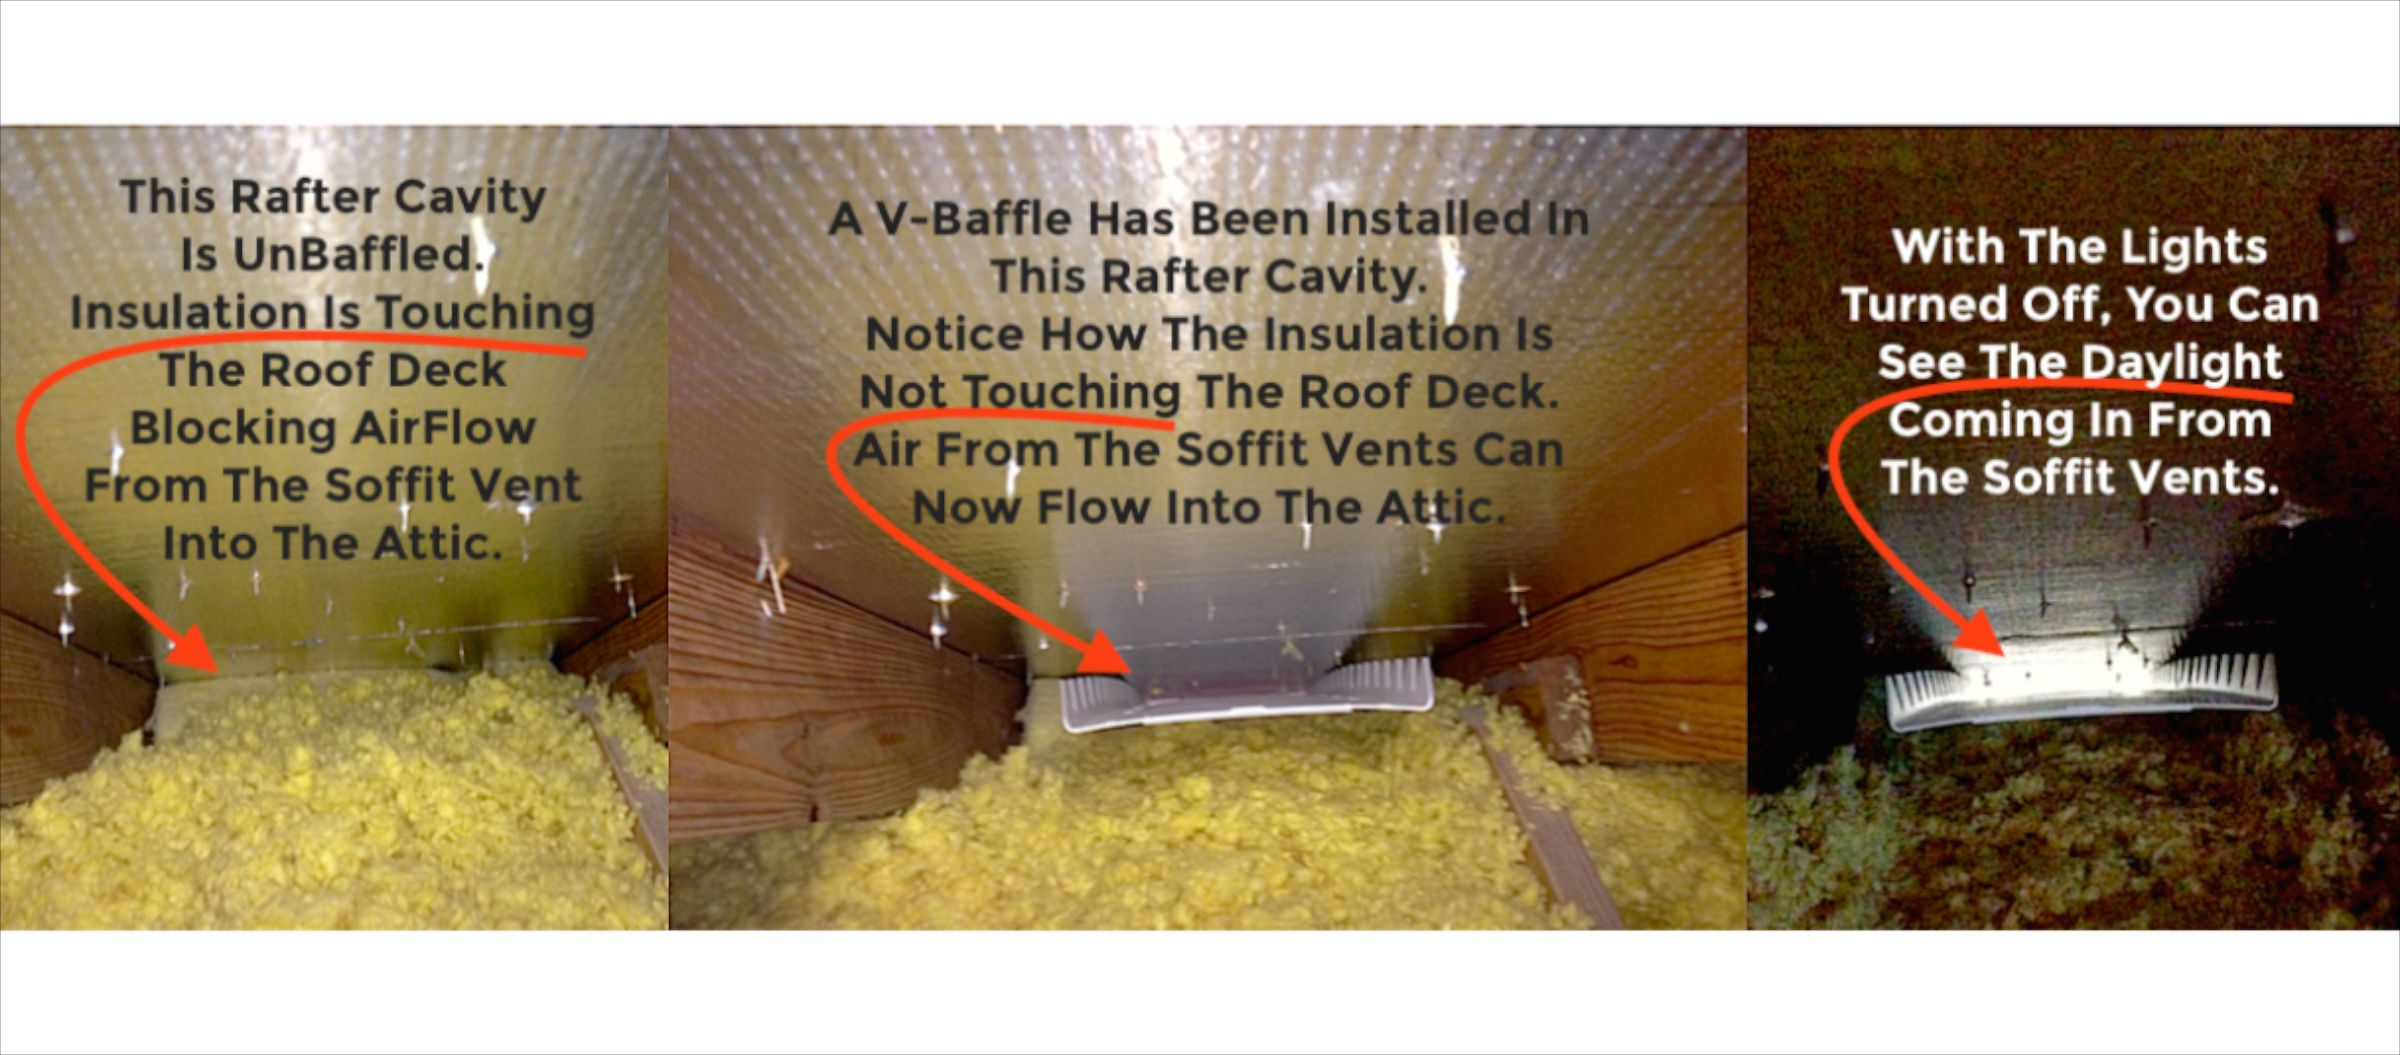 Cathedral Vaulted Or Any Ceiling That Has Insulation Blocking The Airflow From The Soffit Vents To The Attic Nee Roof Insulation Ridge Vent Attic Ventilation